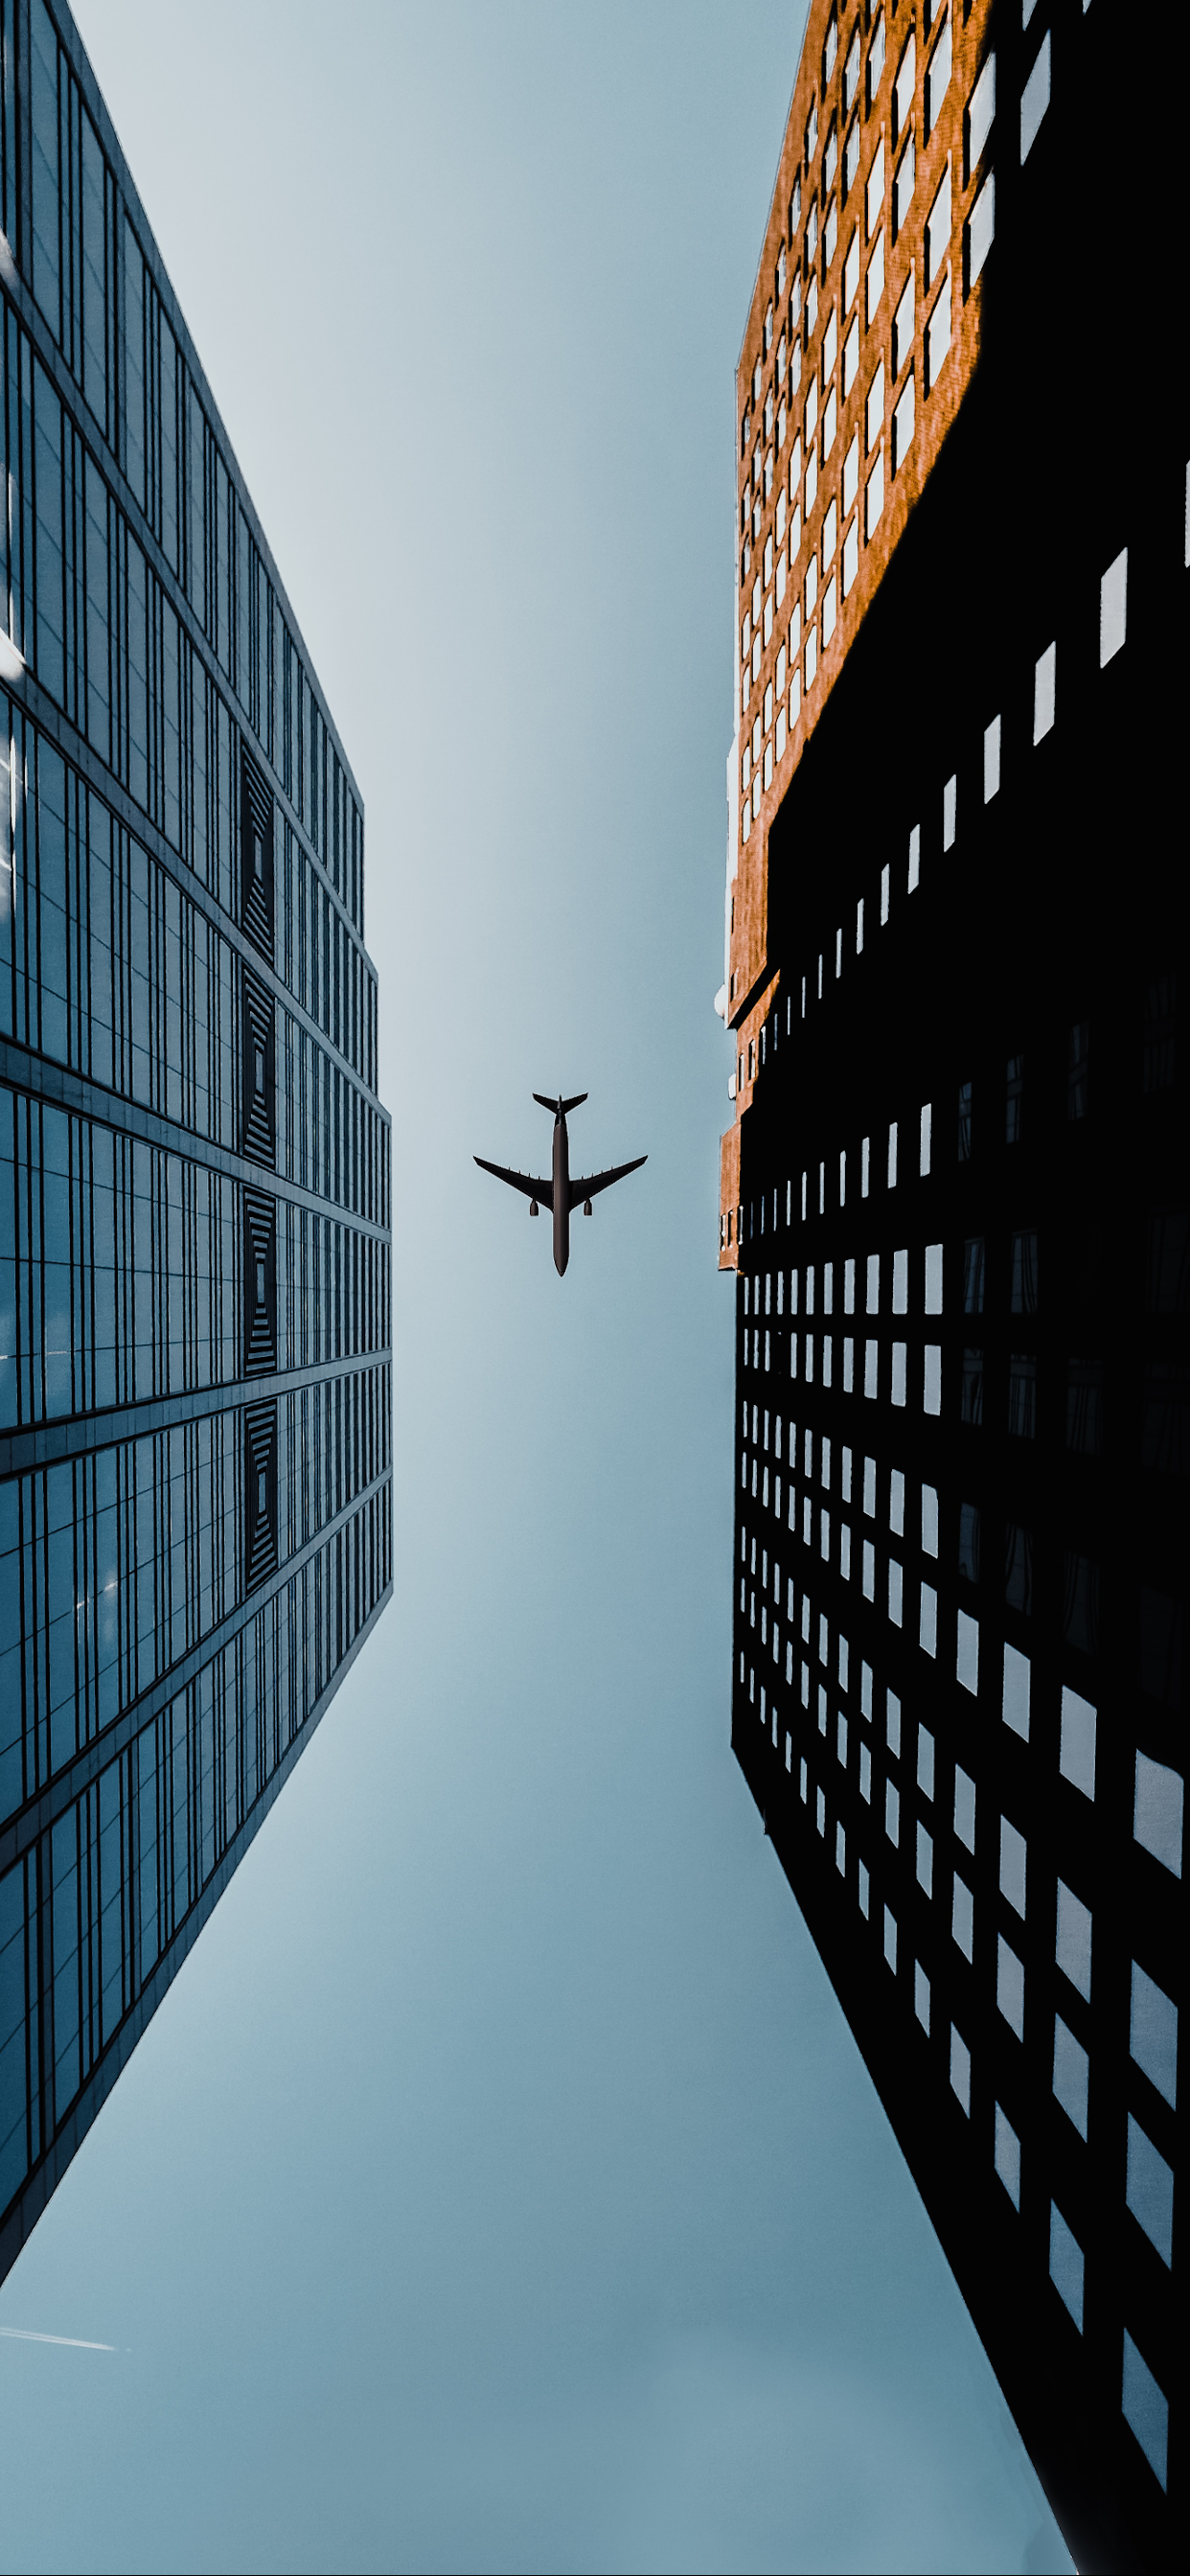 iPhone wallpapers airplane middle buildings Airplane